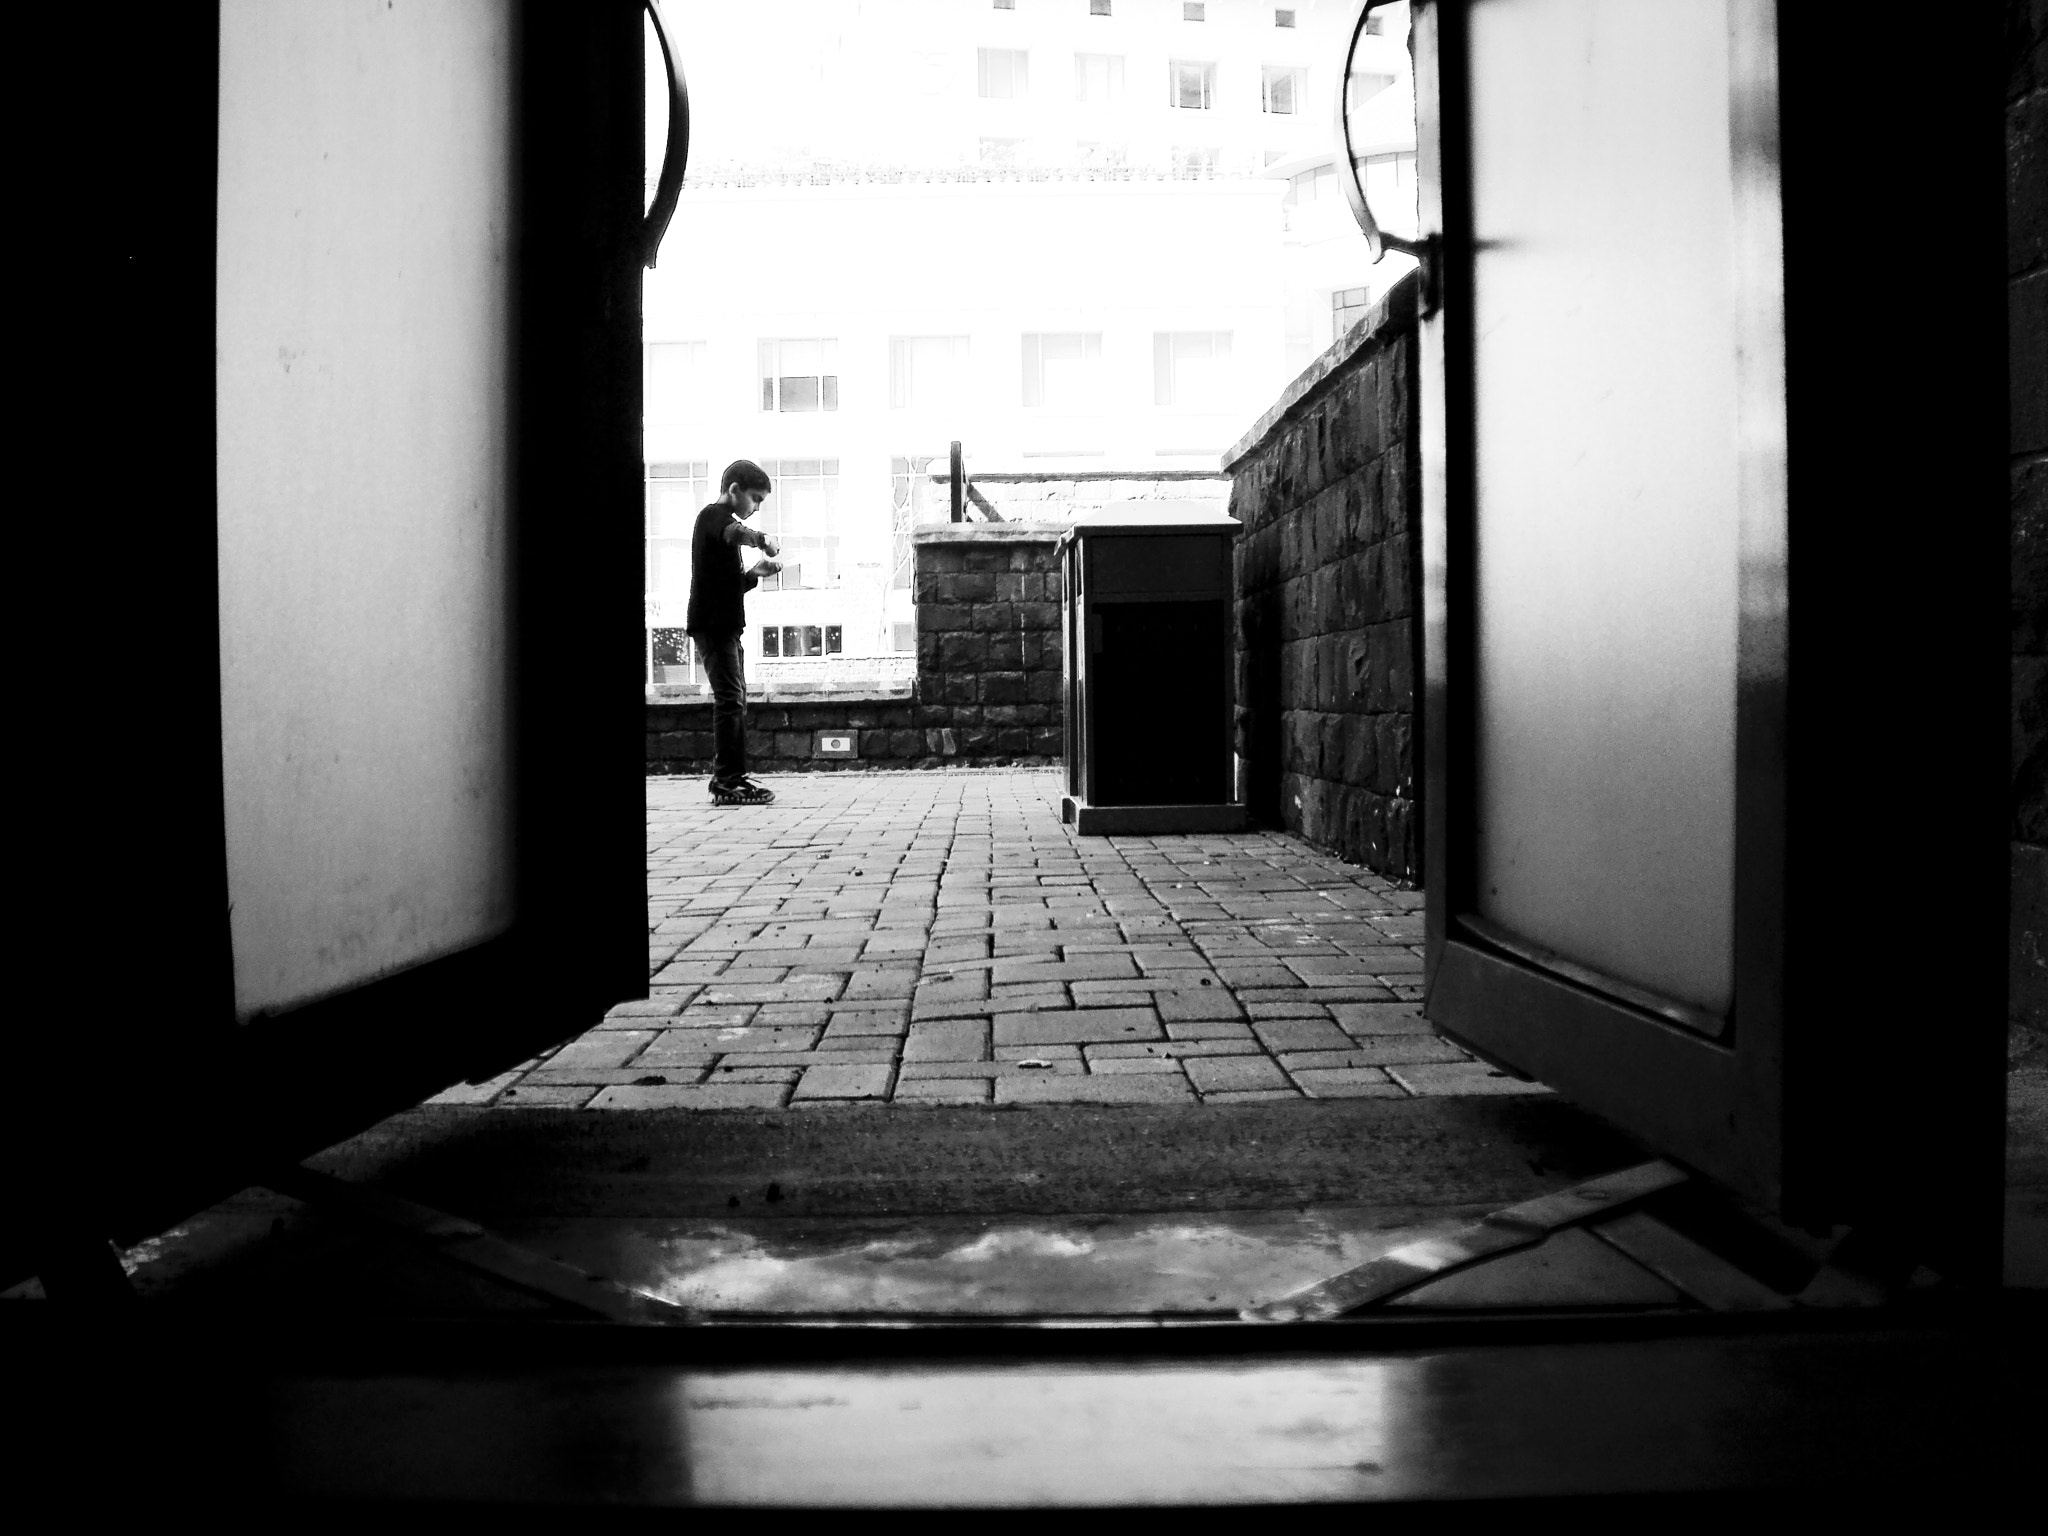 Photograph beyond that secret door, I am free... by ARITRA SEN on 500px